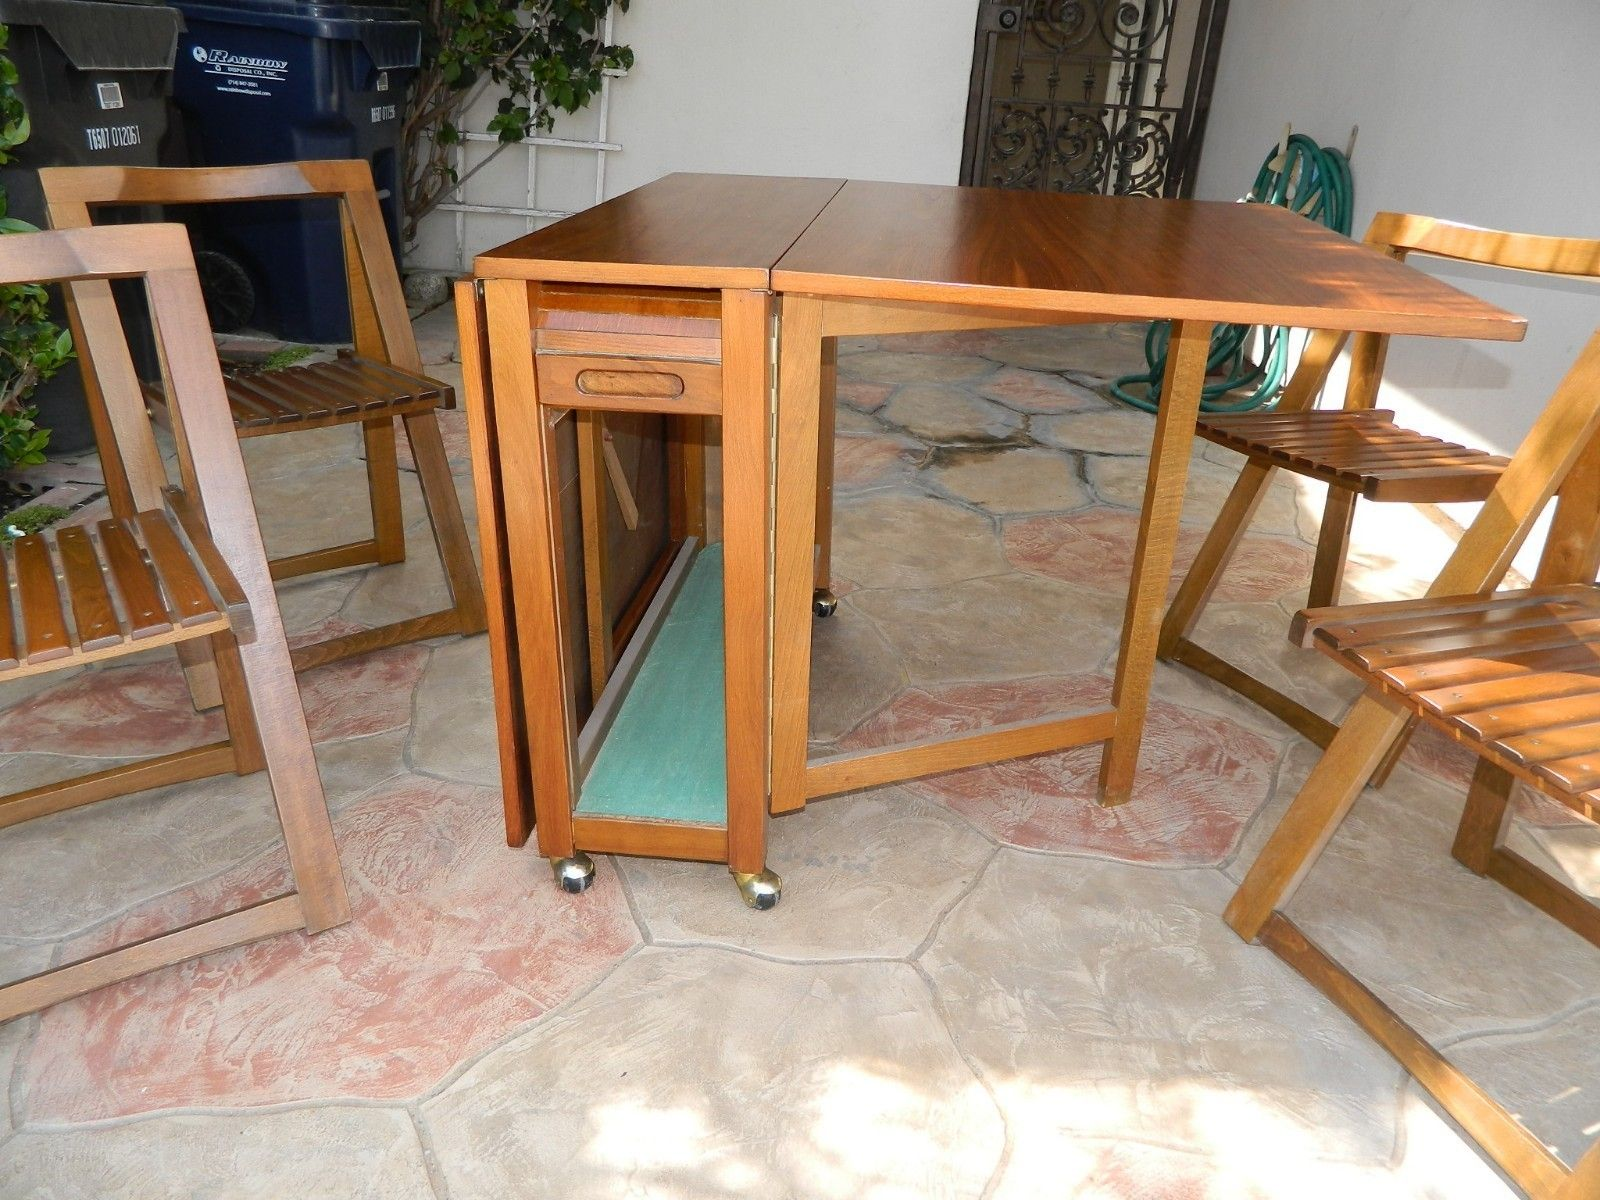 Danish Hide Away Dining Set 4 Folding Chairs W Console Table Mid Century |  EBay